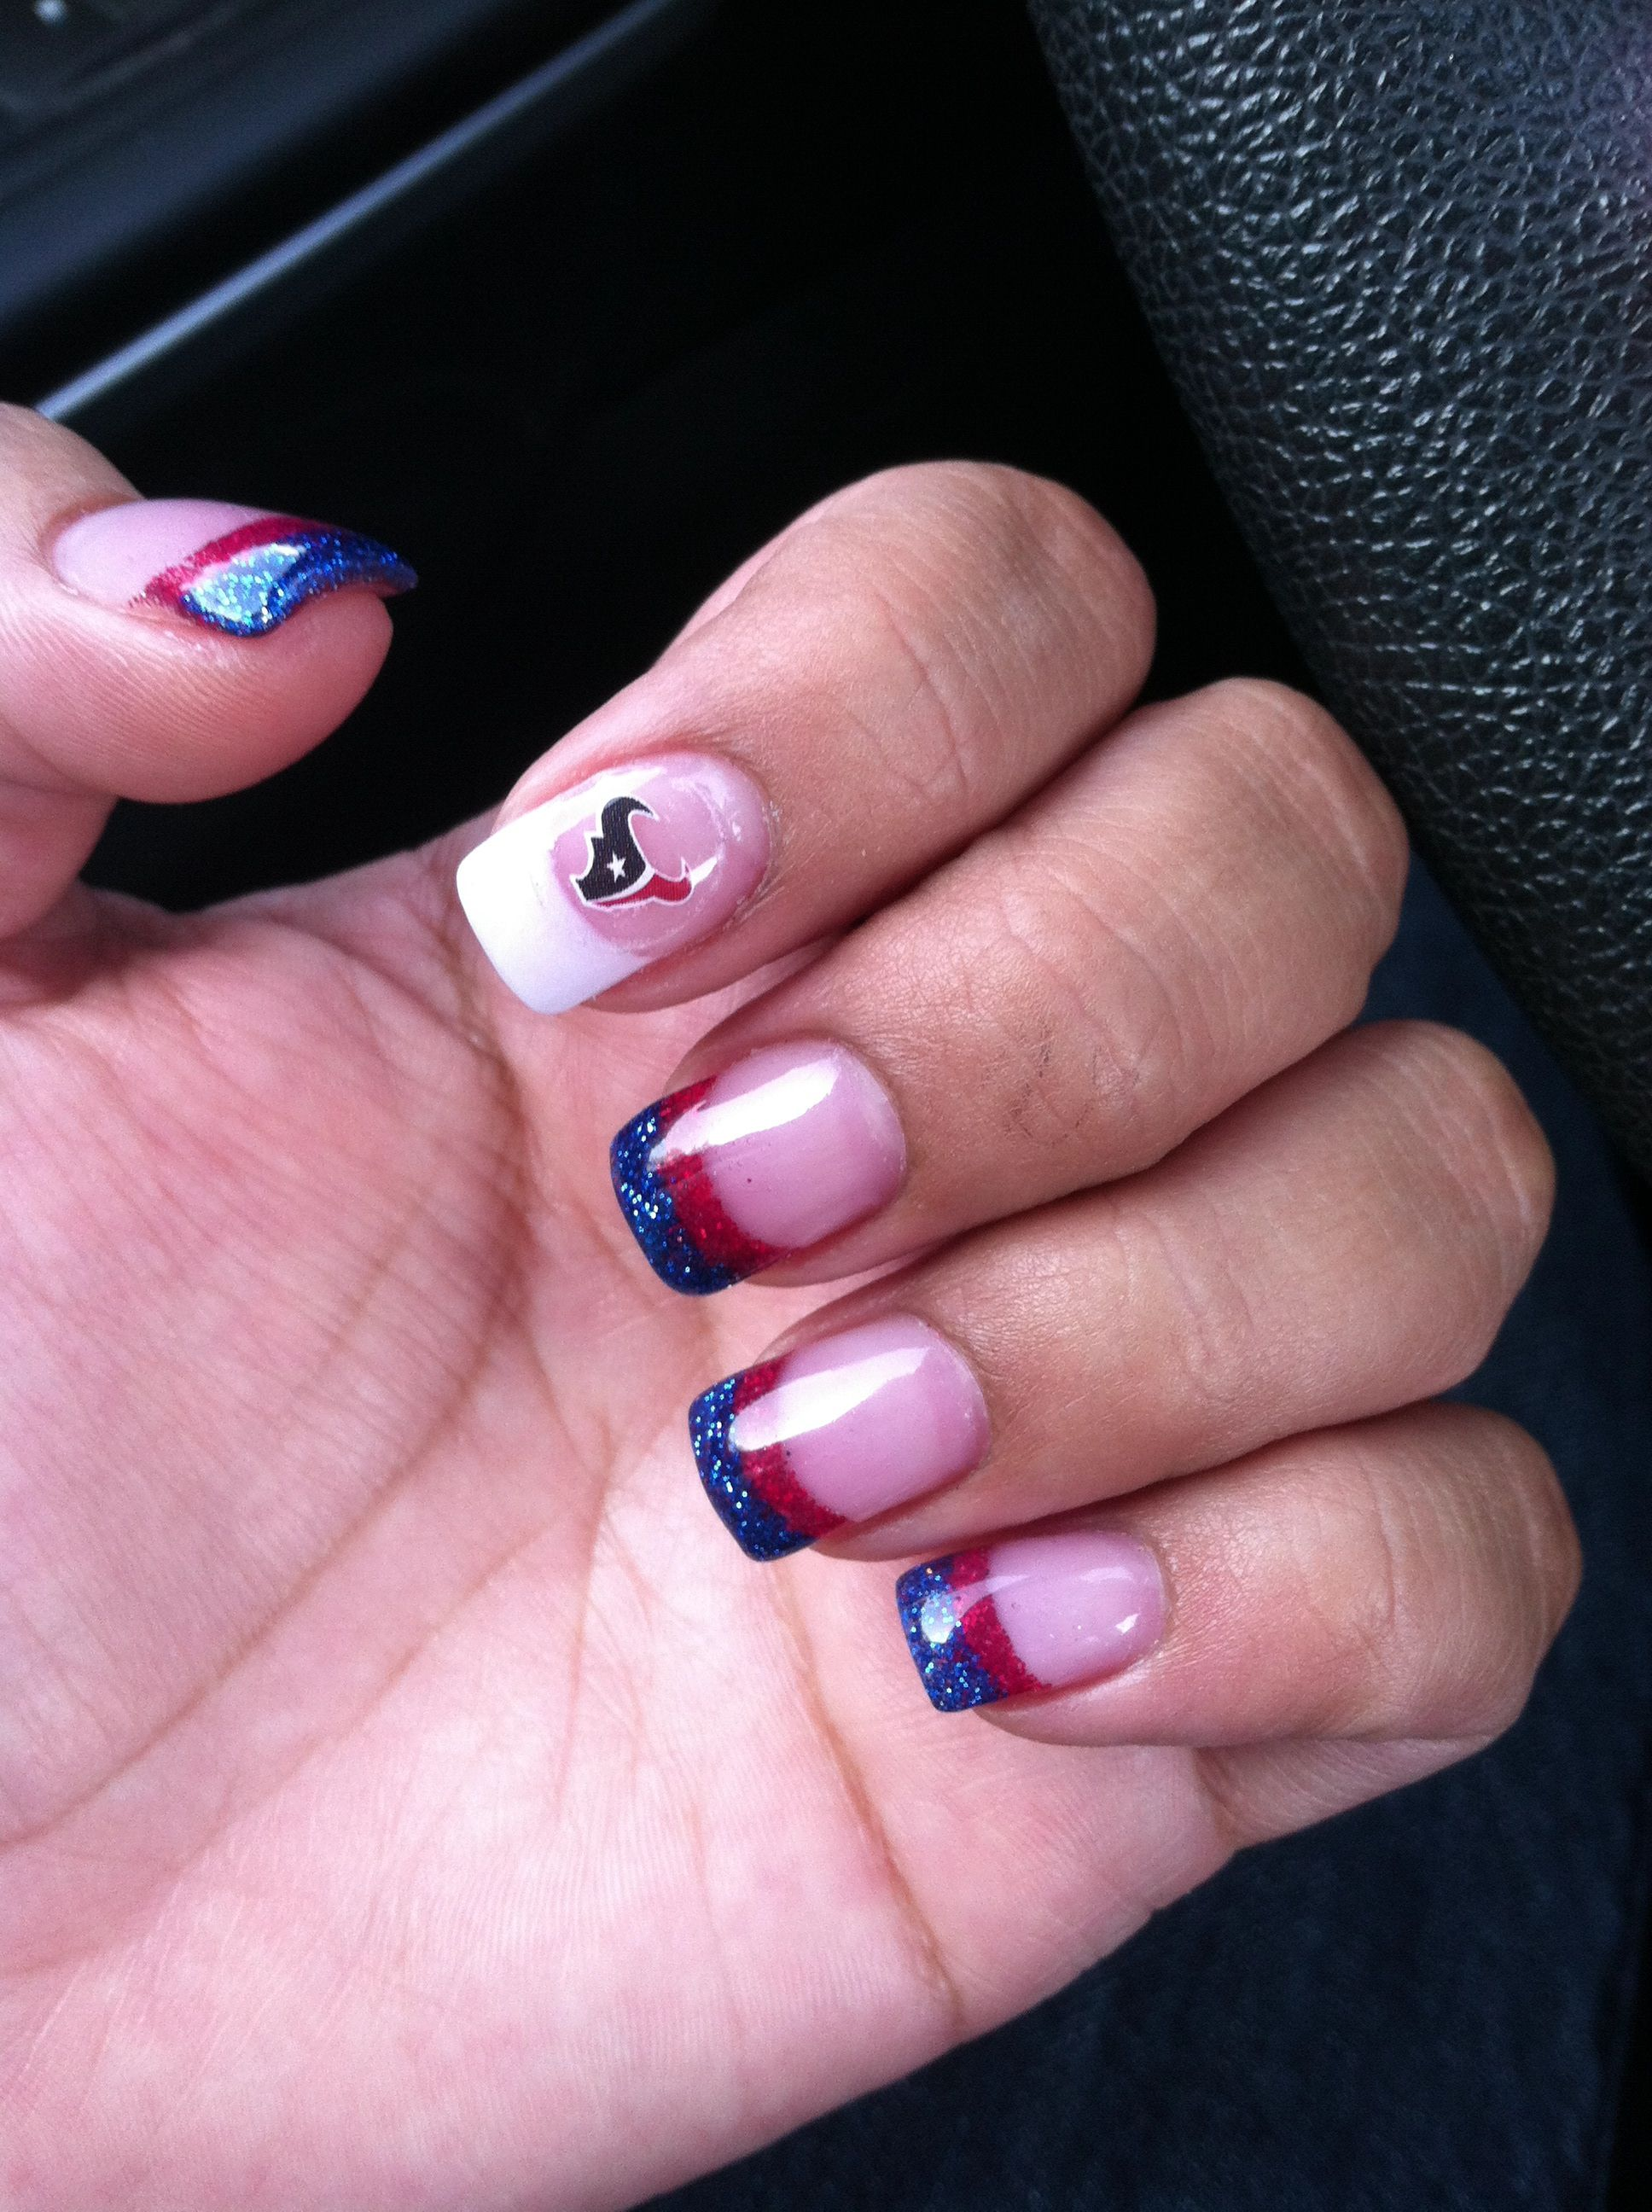 Houston Texans Nails by Too Q Nails & Spa #texans #nails #fb | Nail ...